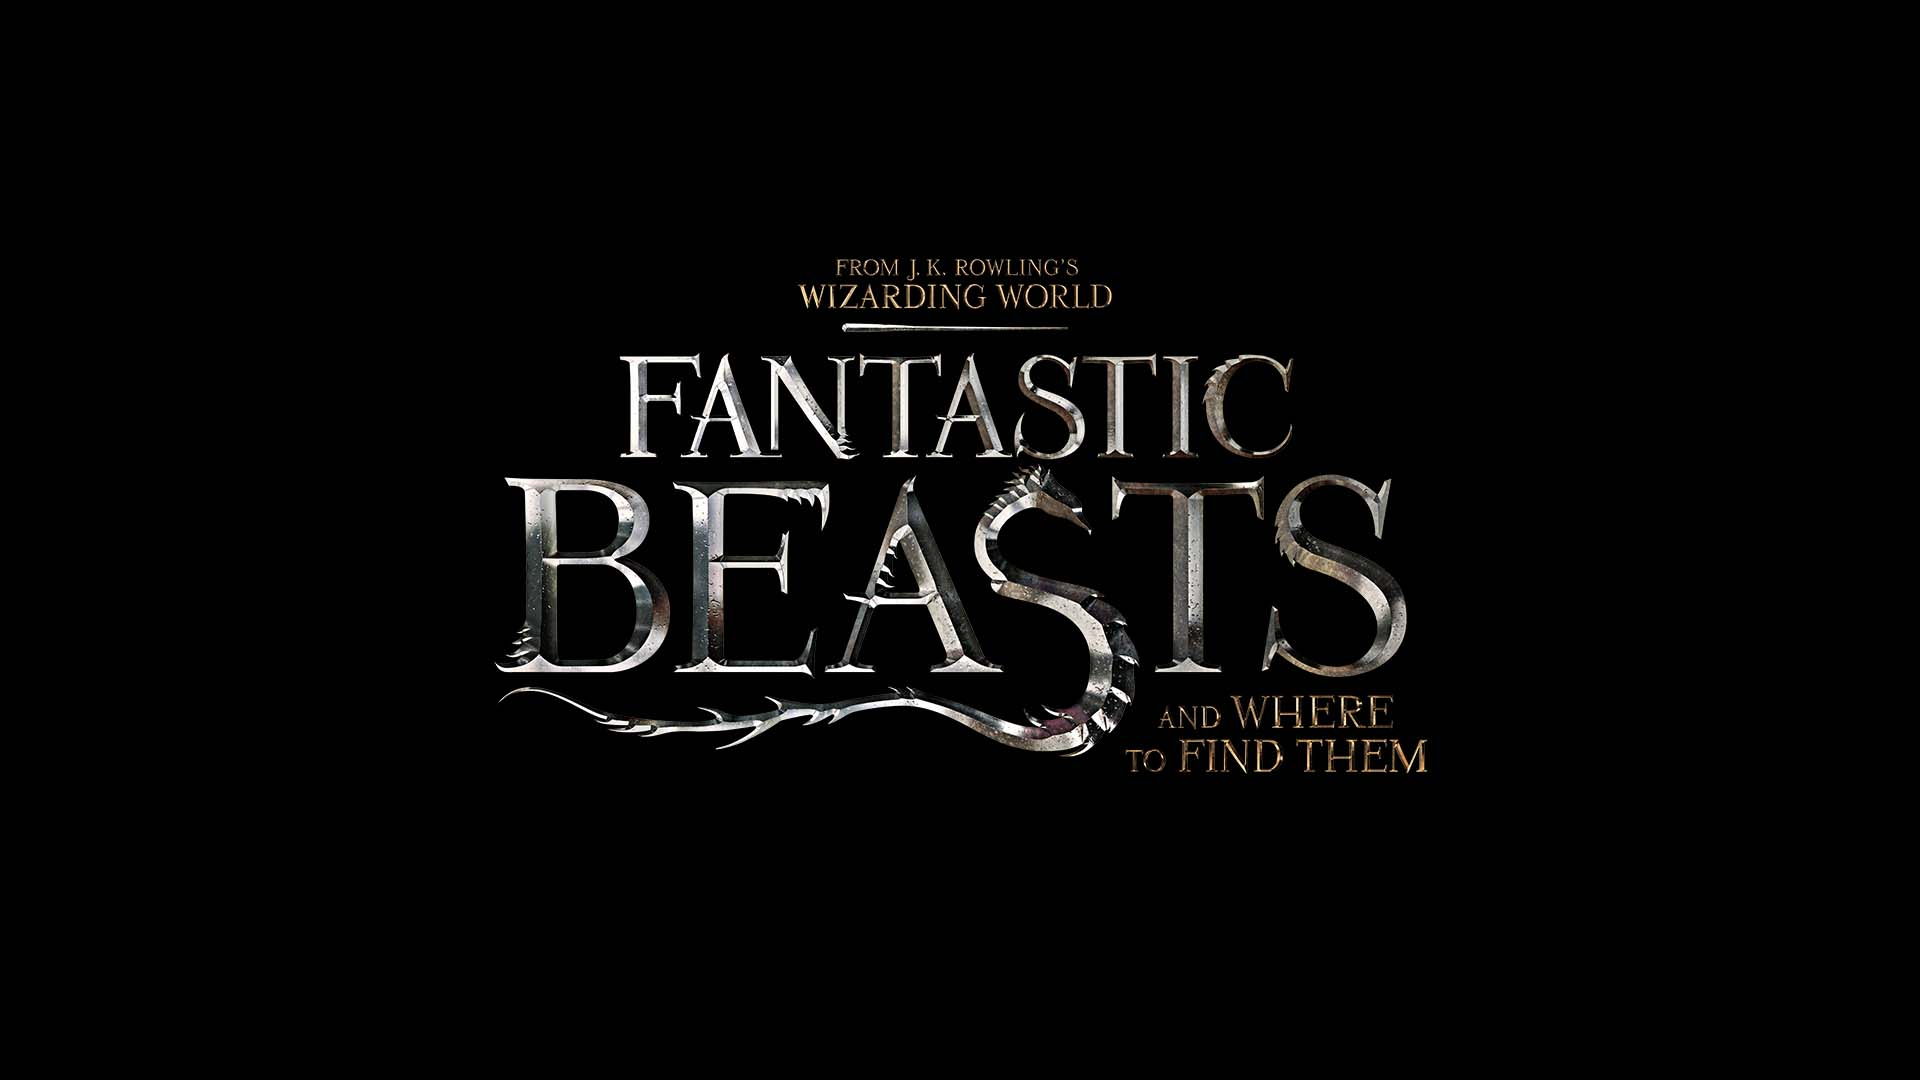 Fantastic Beasts: The Crime of Grindelwald